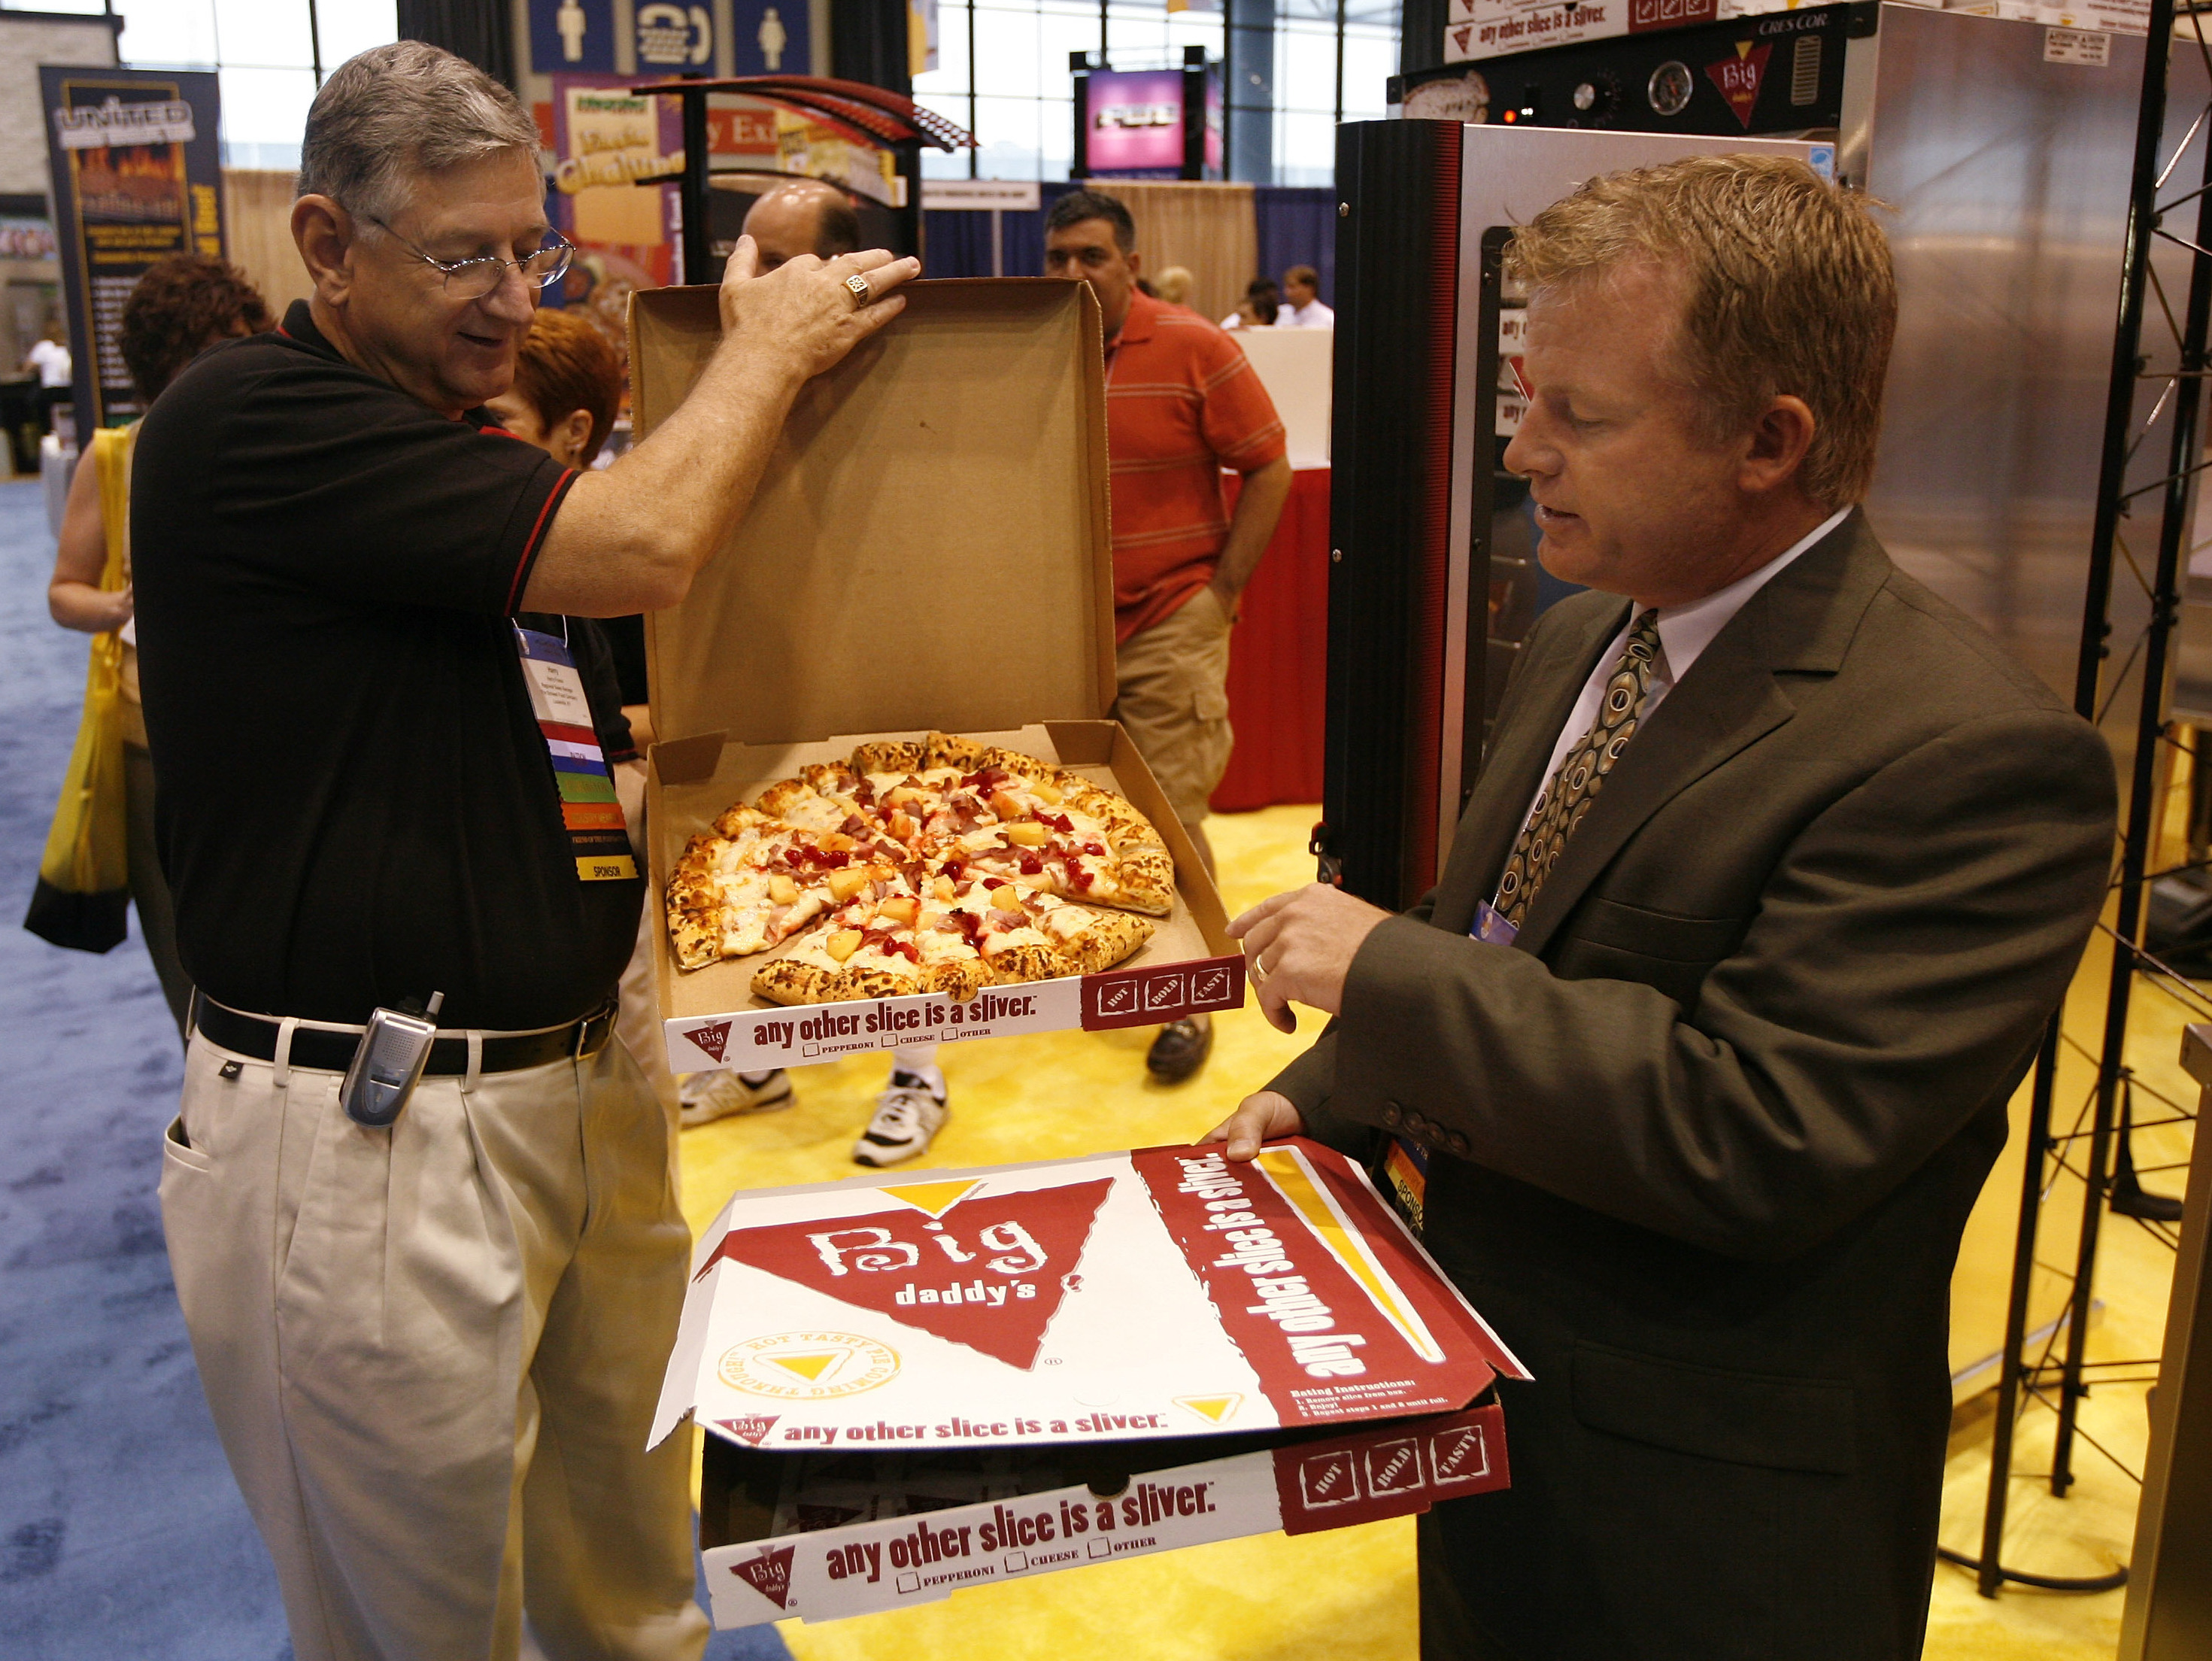 Patrick McCoy (right) and Harry Fowler of the Schwan Food Co. show off their company's Big Daddy's pizza at the School Nutrition Association's national conference in Chicago in 2007. Photo: Brian Kersey/AP